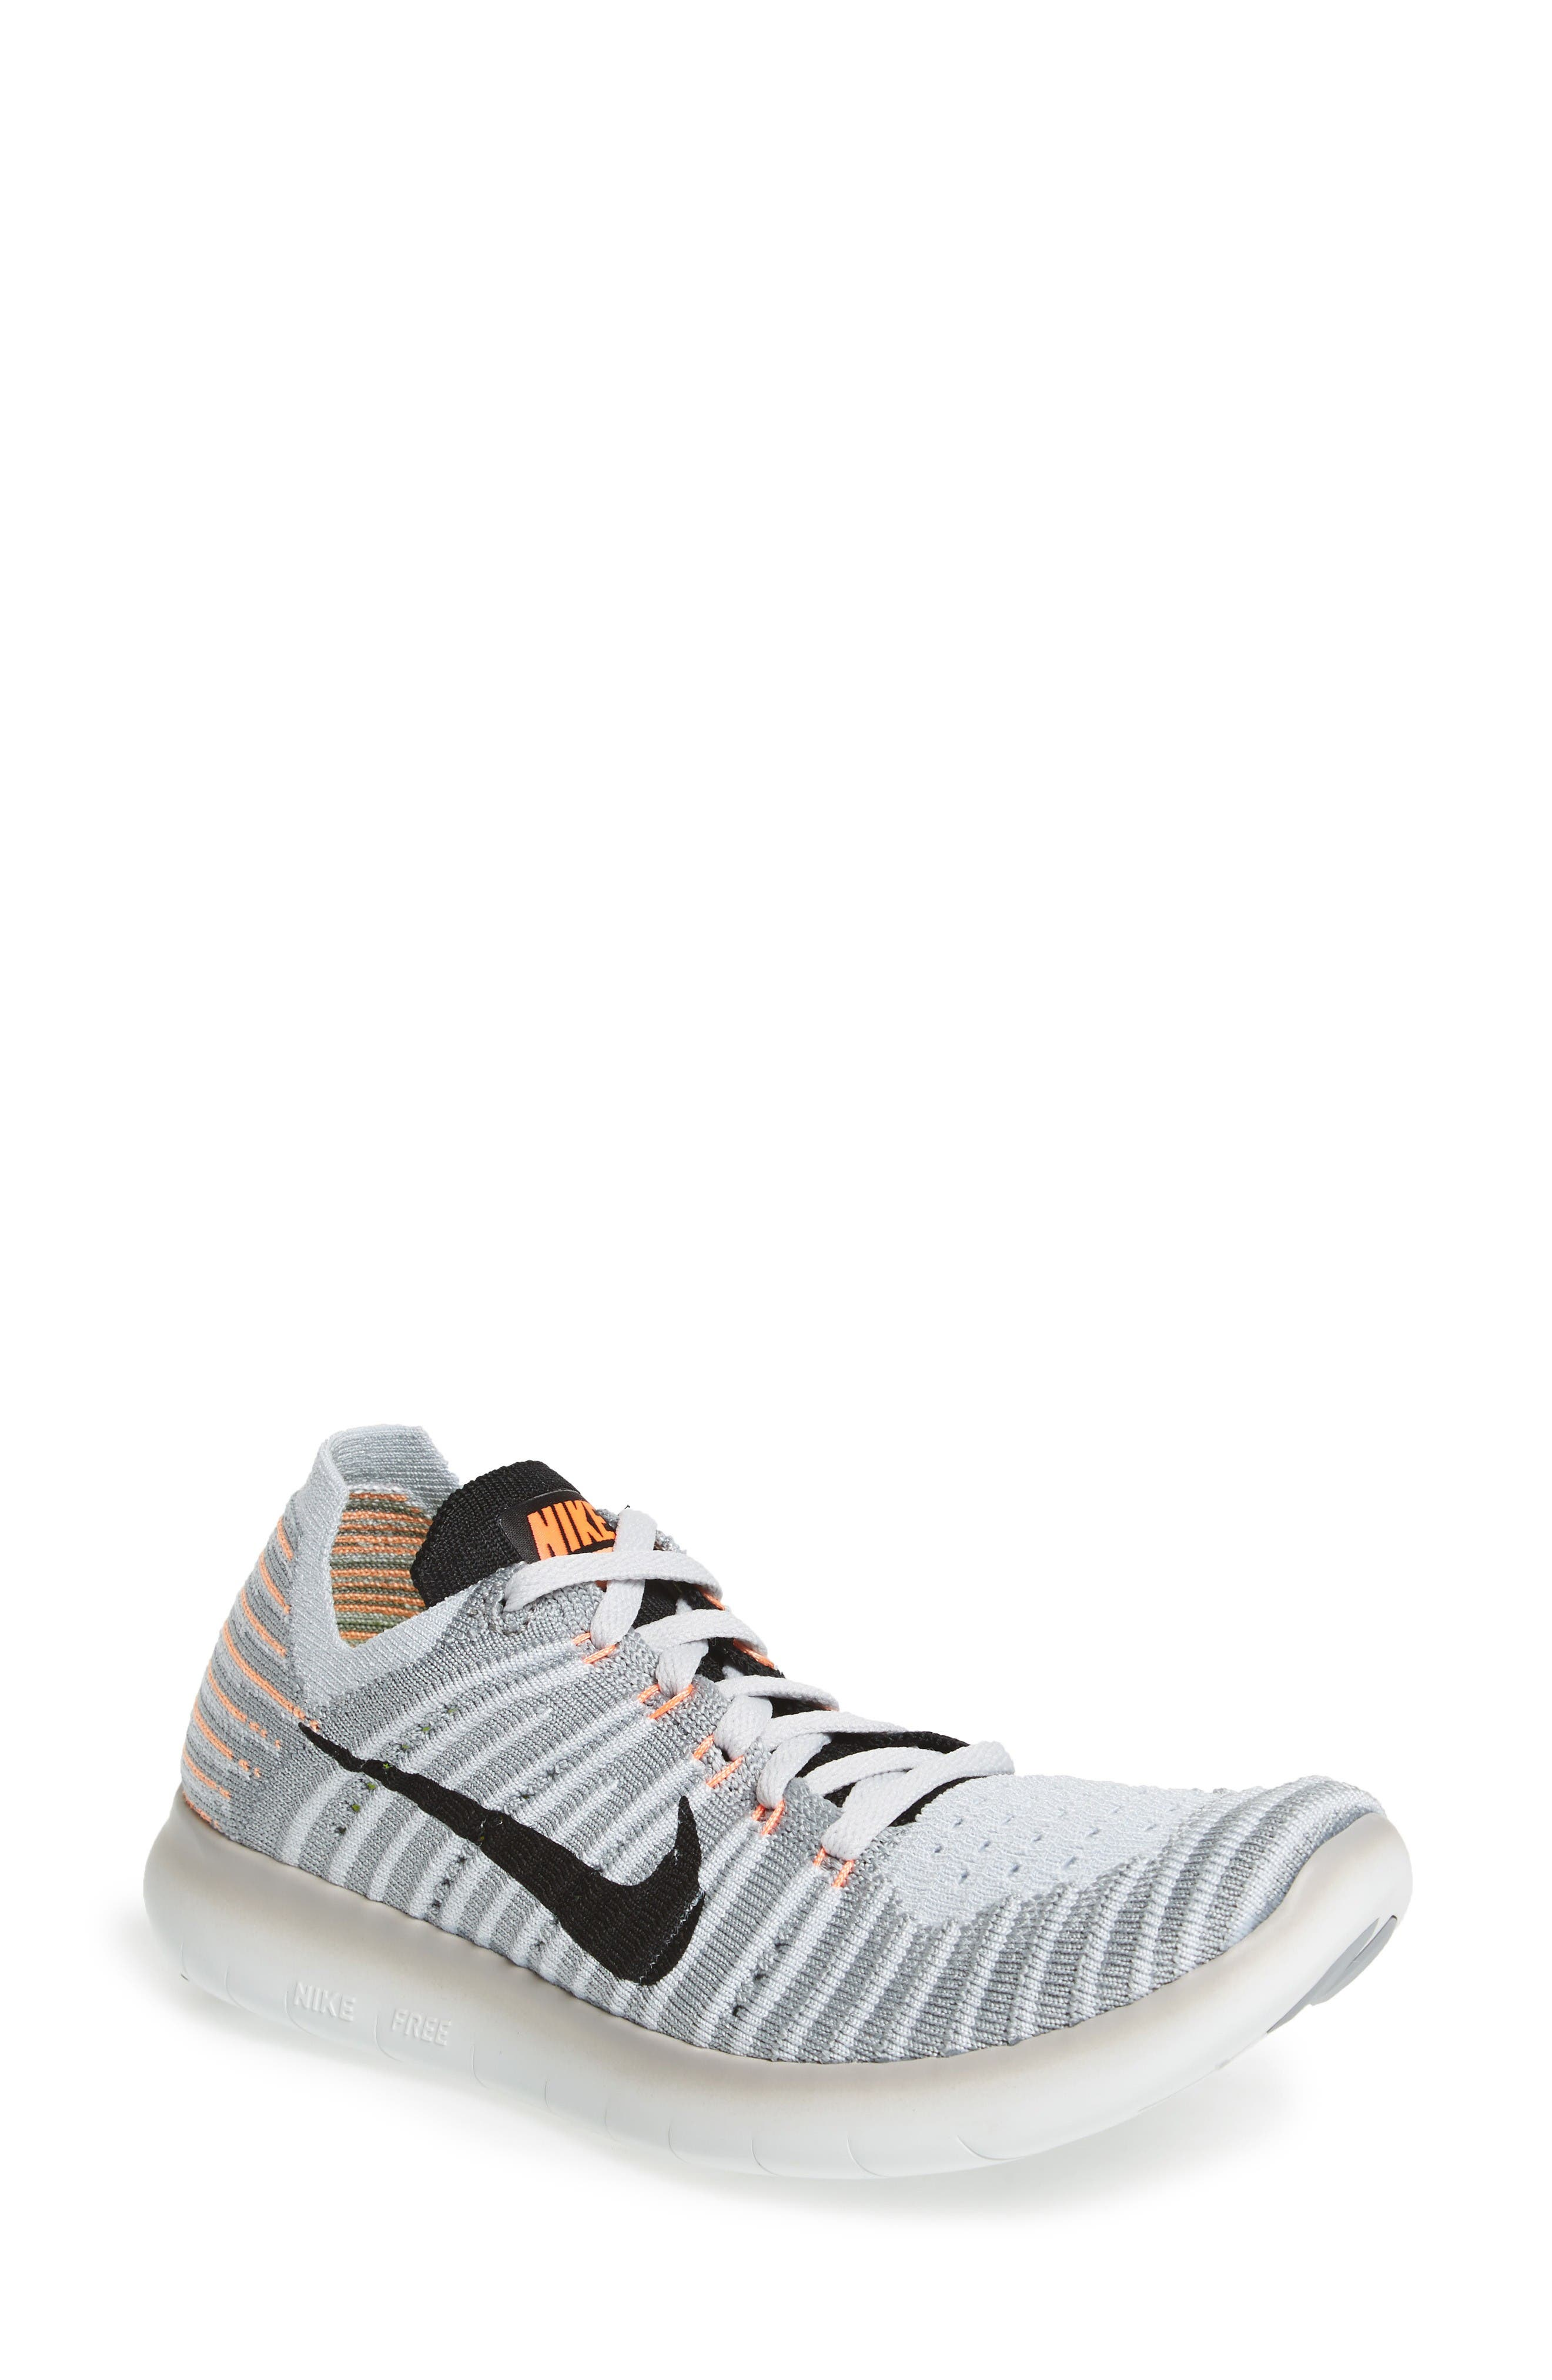 Alternate Image 1 Selected - Nike 'Free Flyknit' Running Shoe (Women)